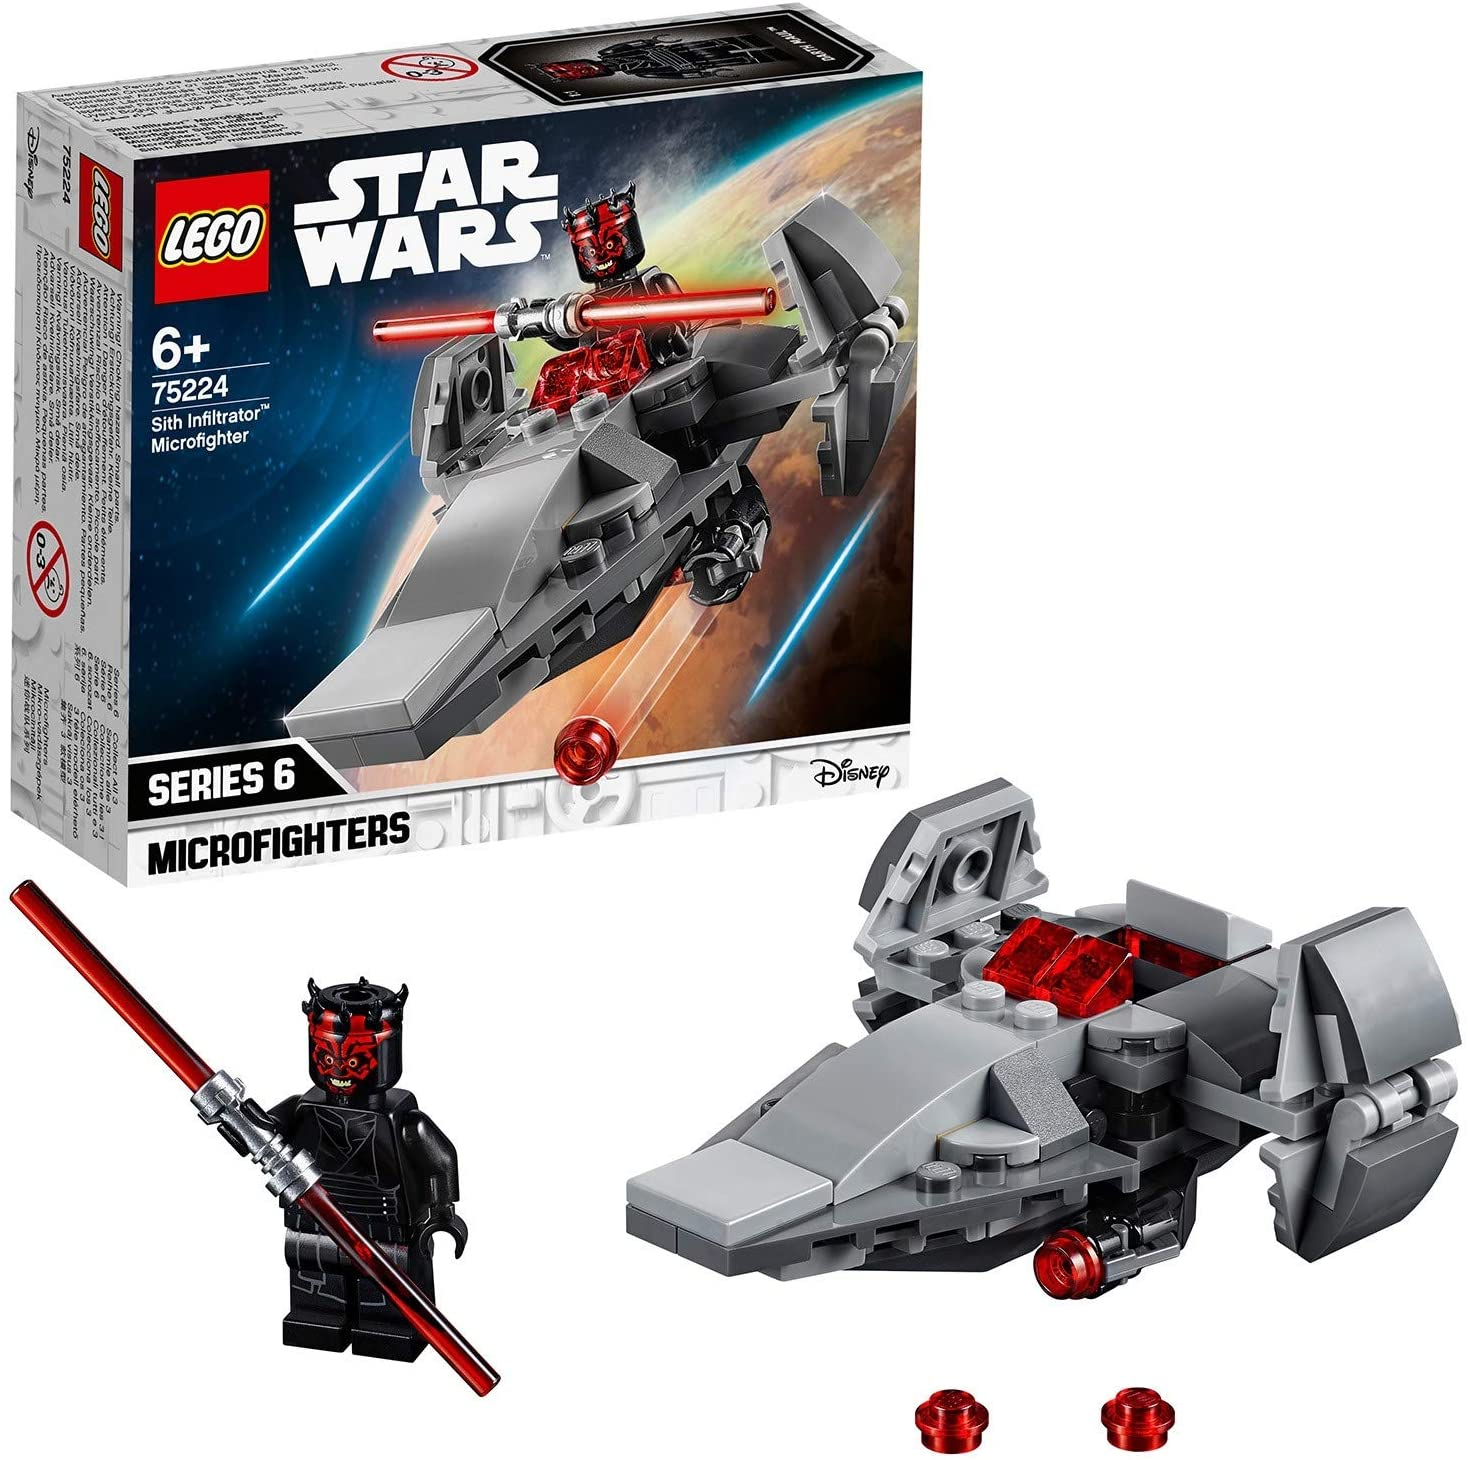 LEGO Star Wars Sith Infiltrator Microfighter Building Kit